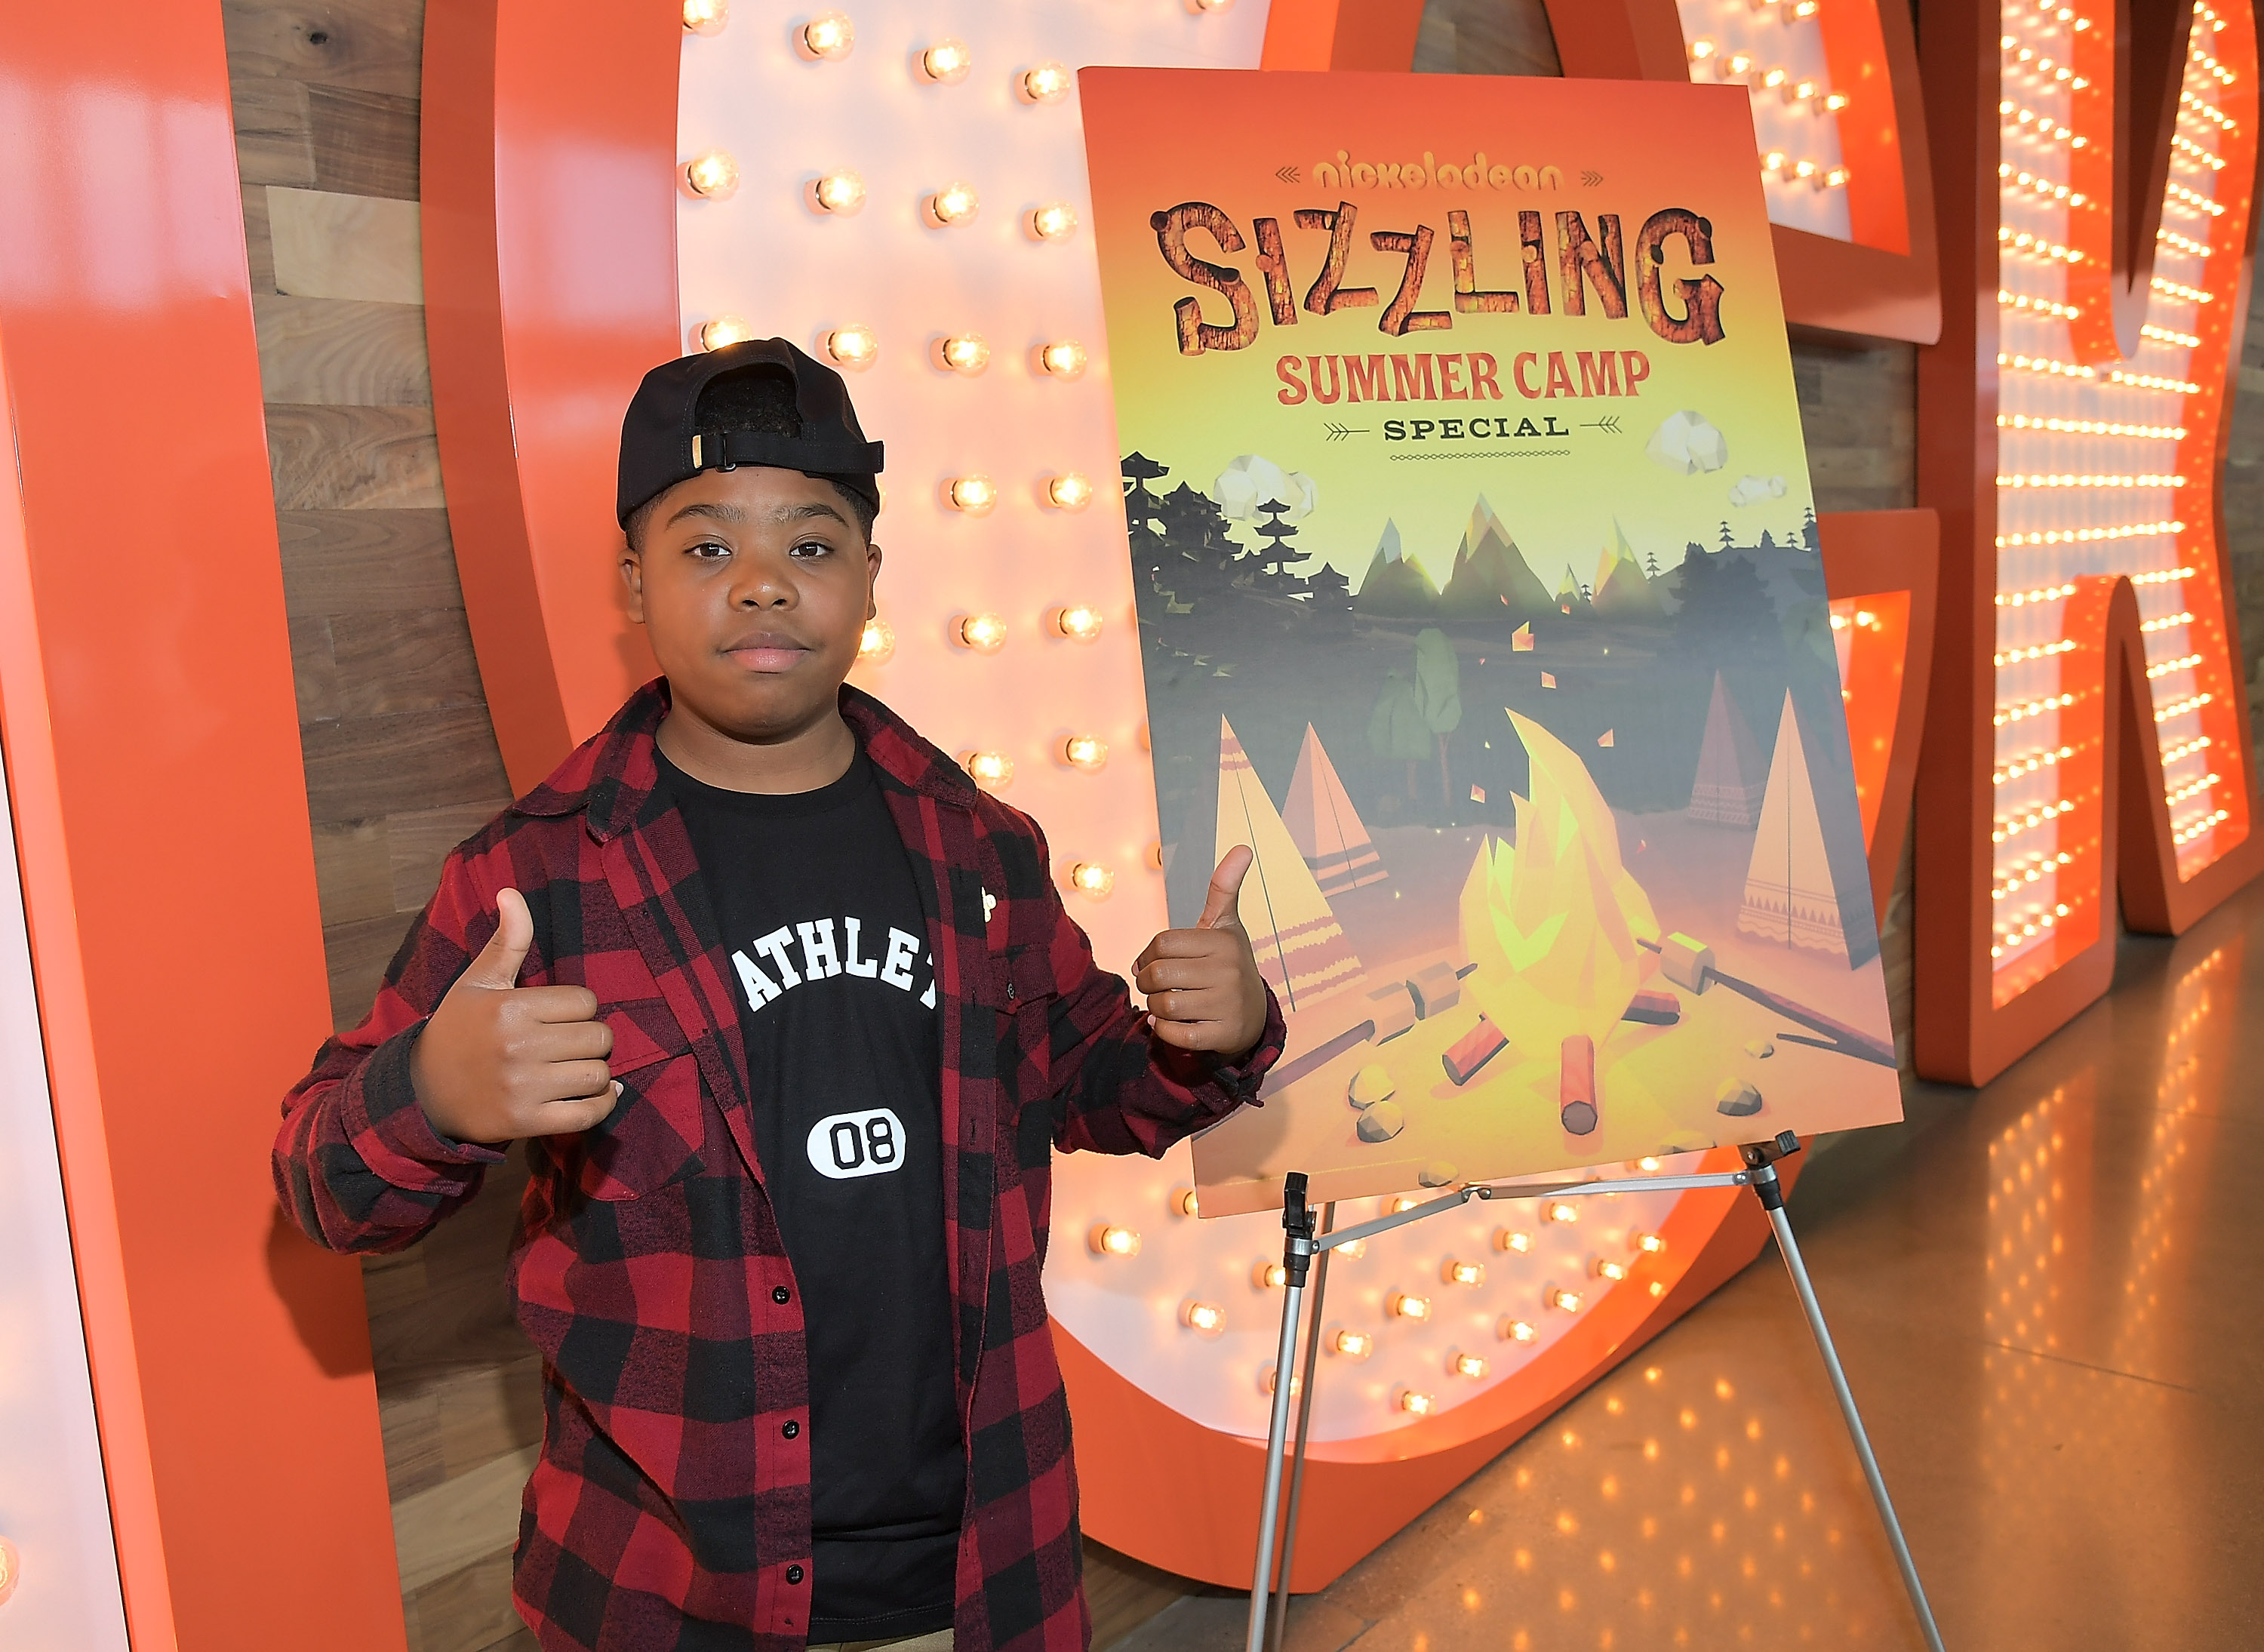 Nickelodeon's Sizzling Summer Camp Special Event